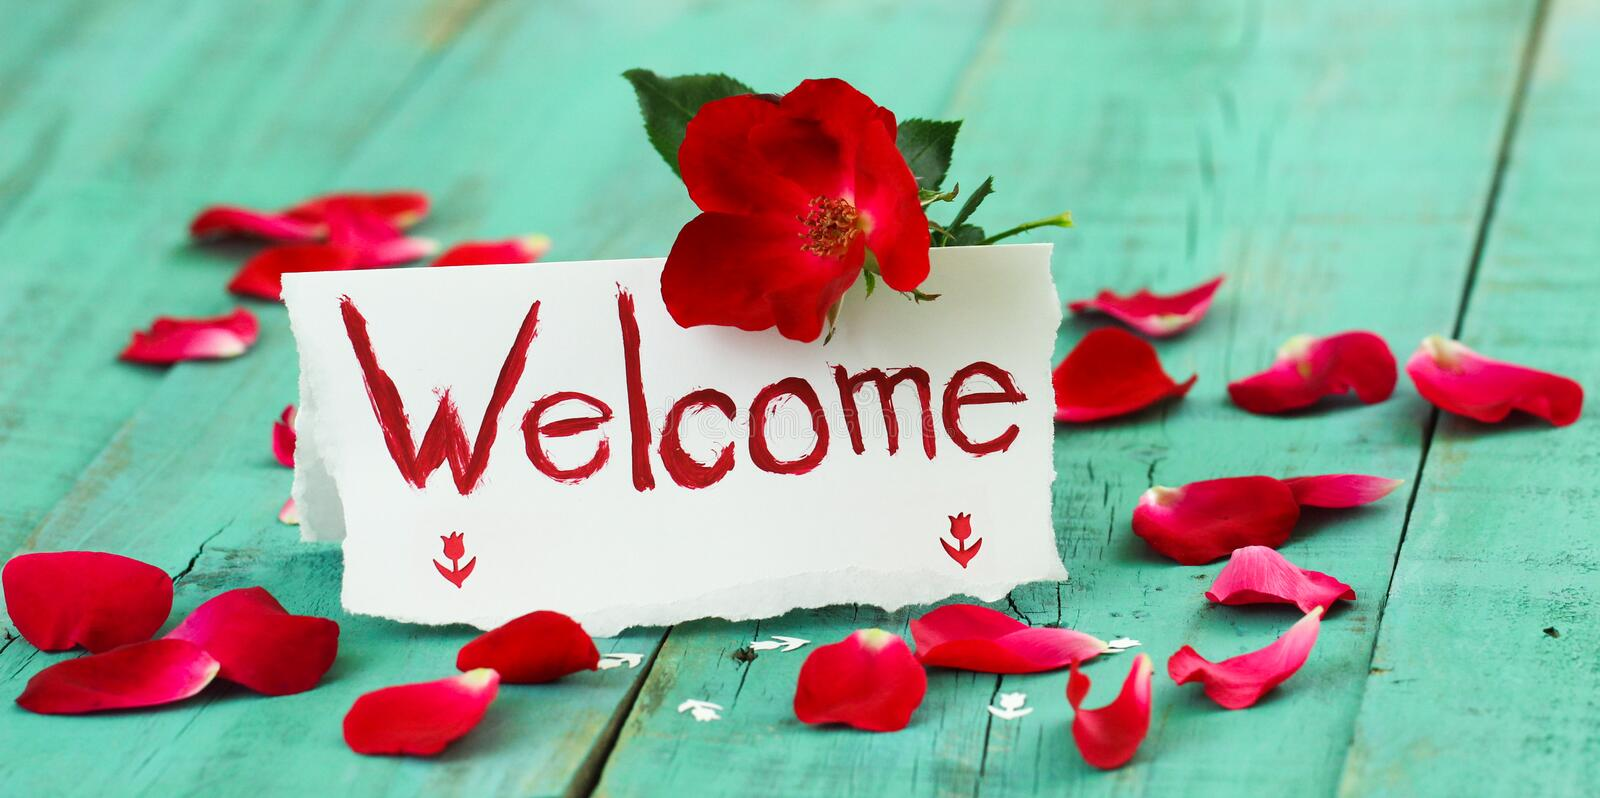 Red and white welcome place card with red flower and rose petals on antique green rustic wood table stock photography